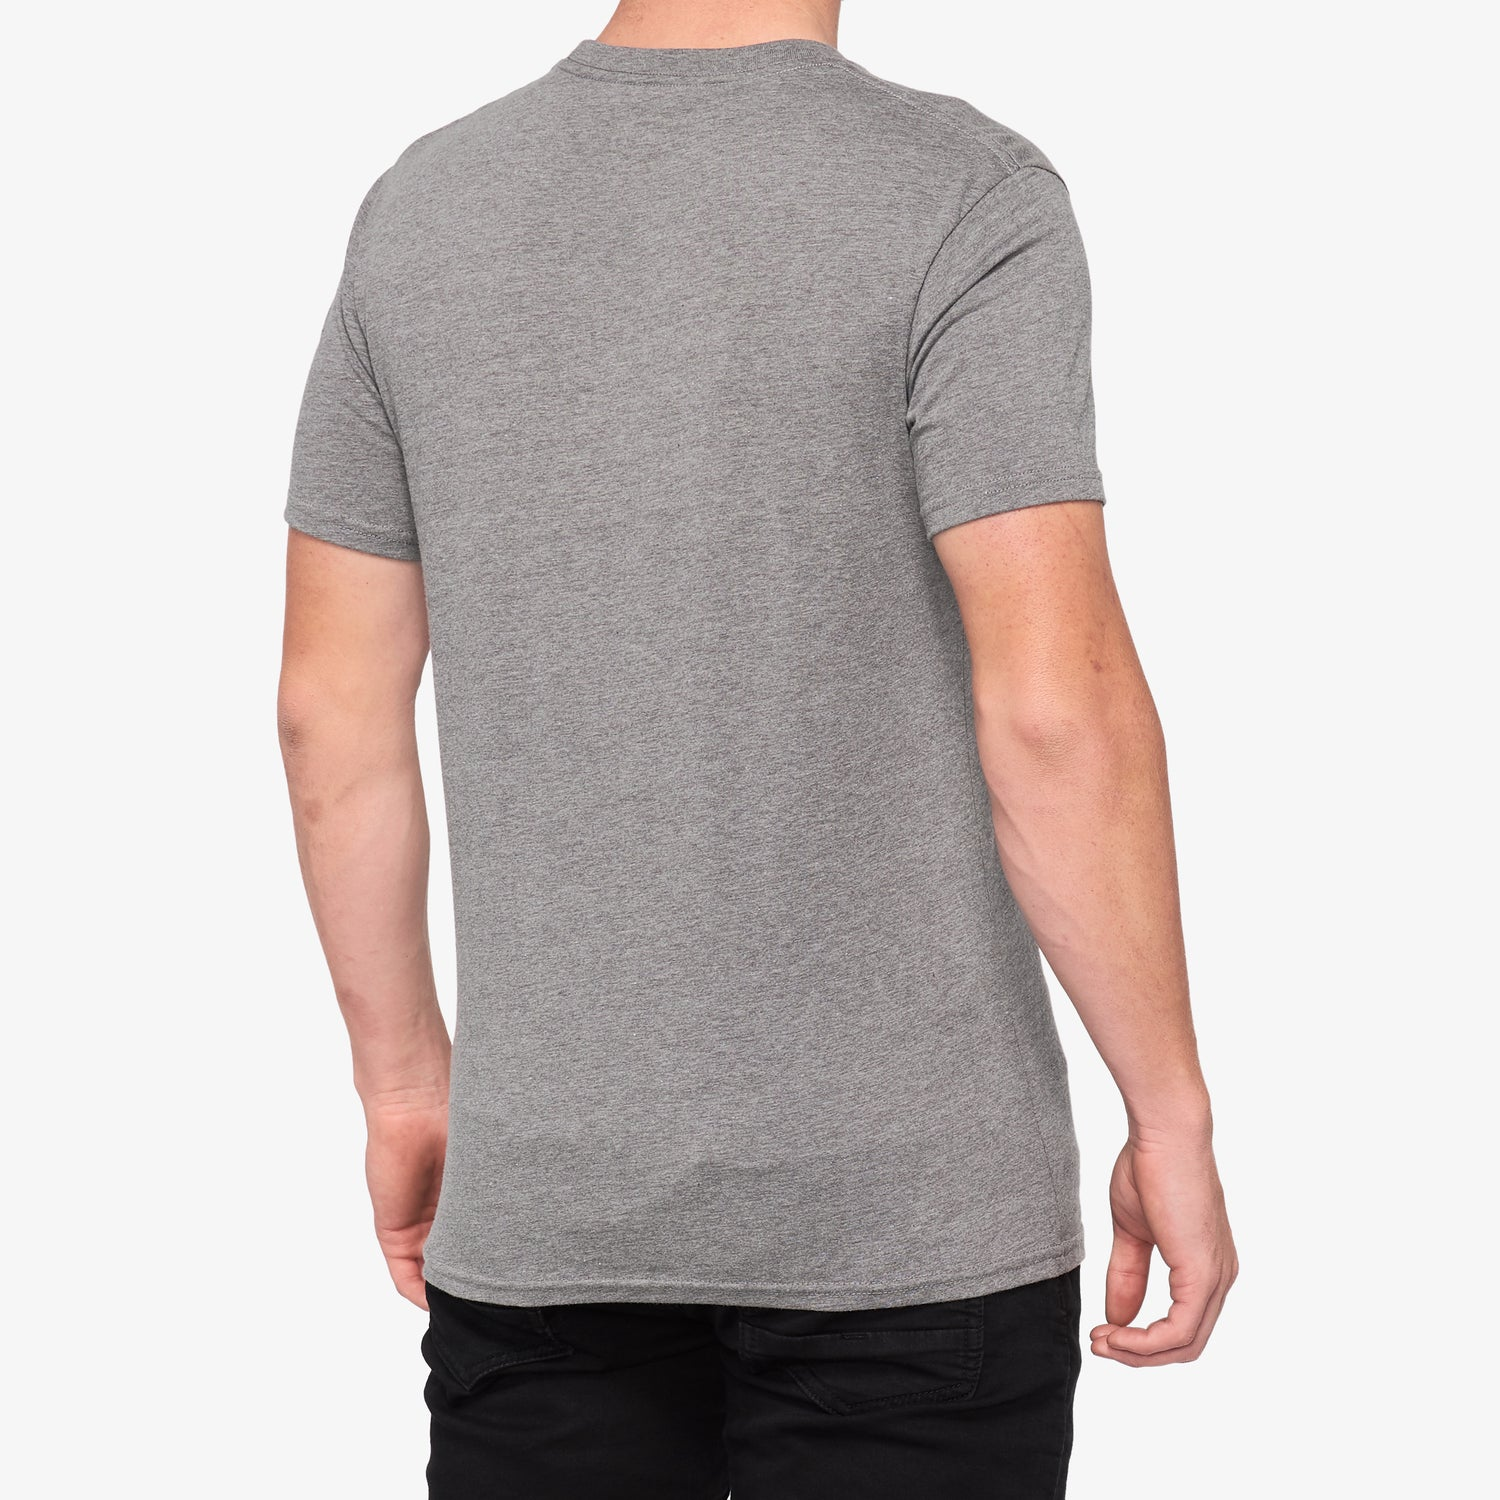 VOLTA T-shirt Heather Grey